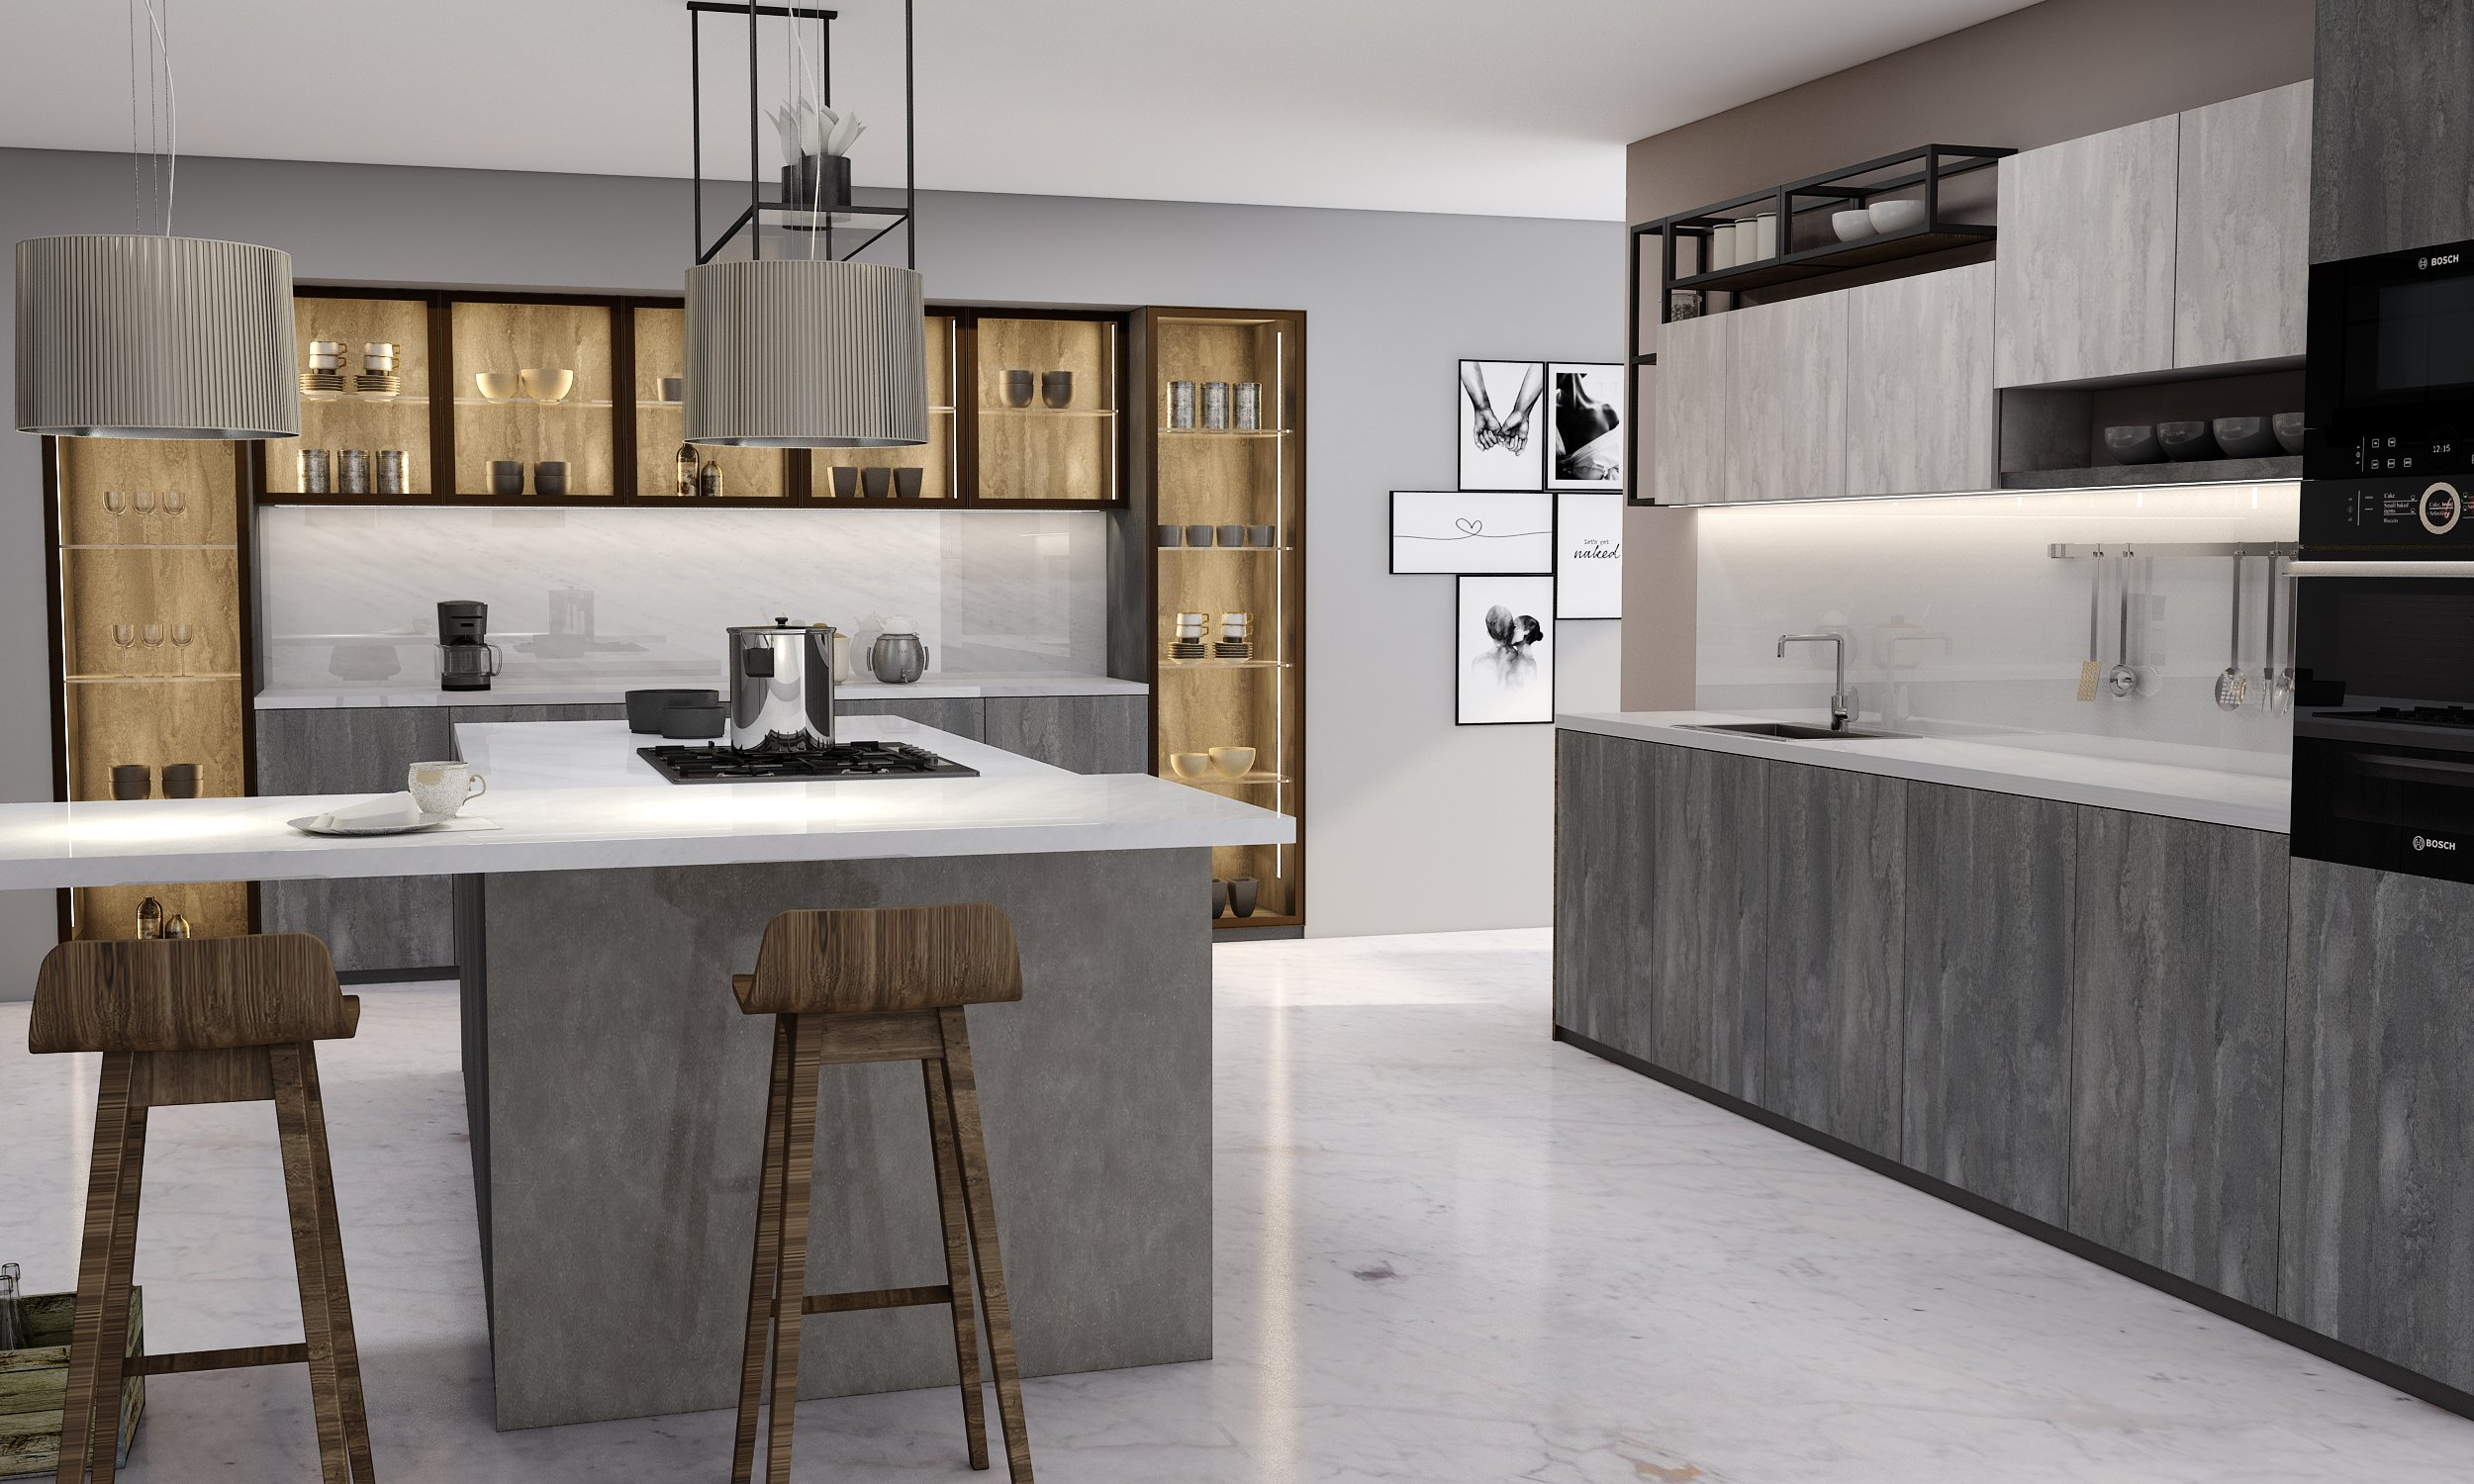 Easyline Handle Kitchen in Concrete Flow & Iron  Flow Textured Finish With Glass Cabinets